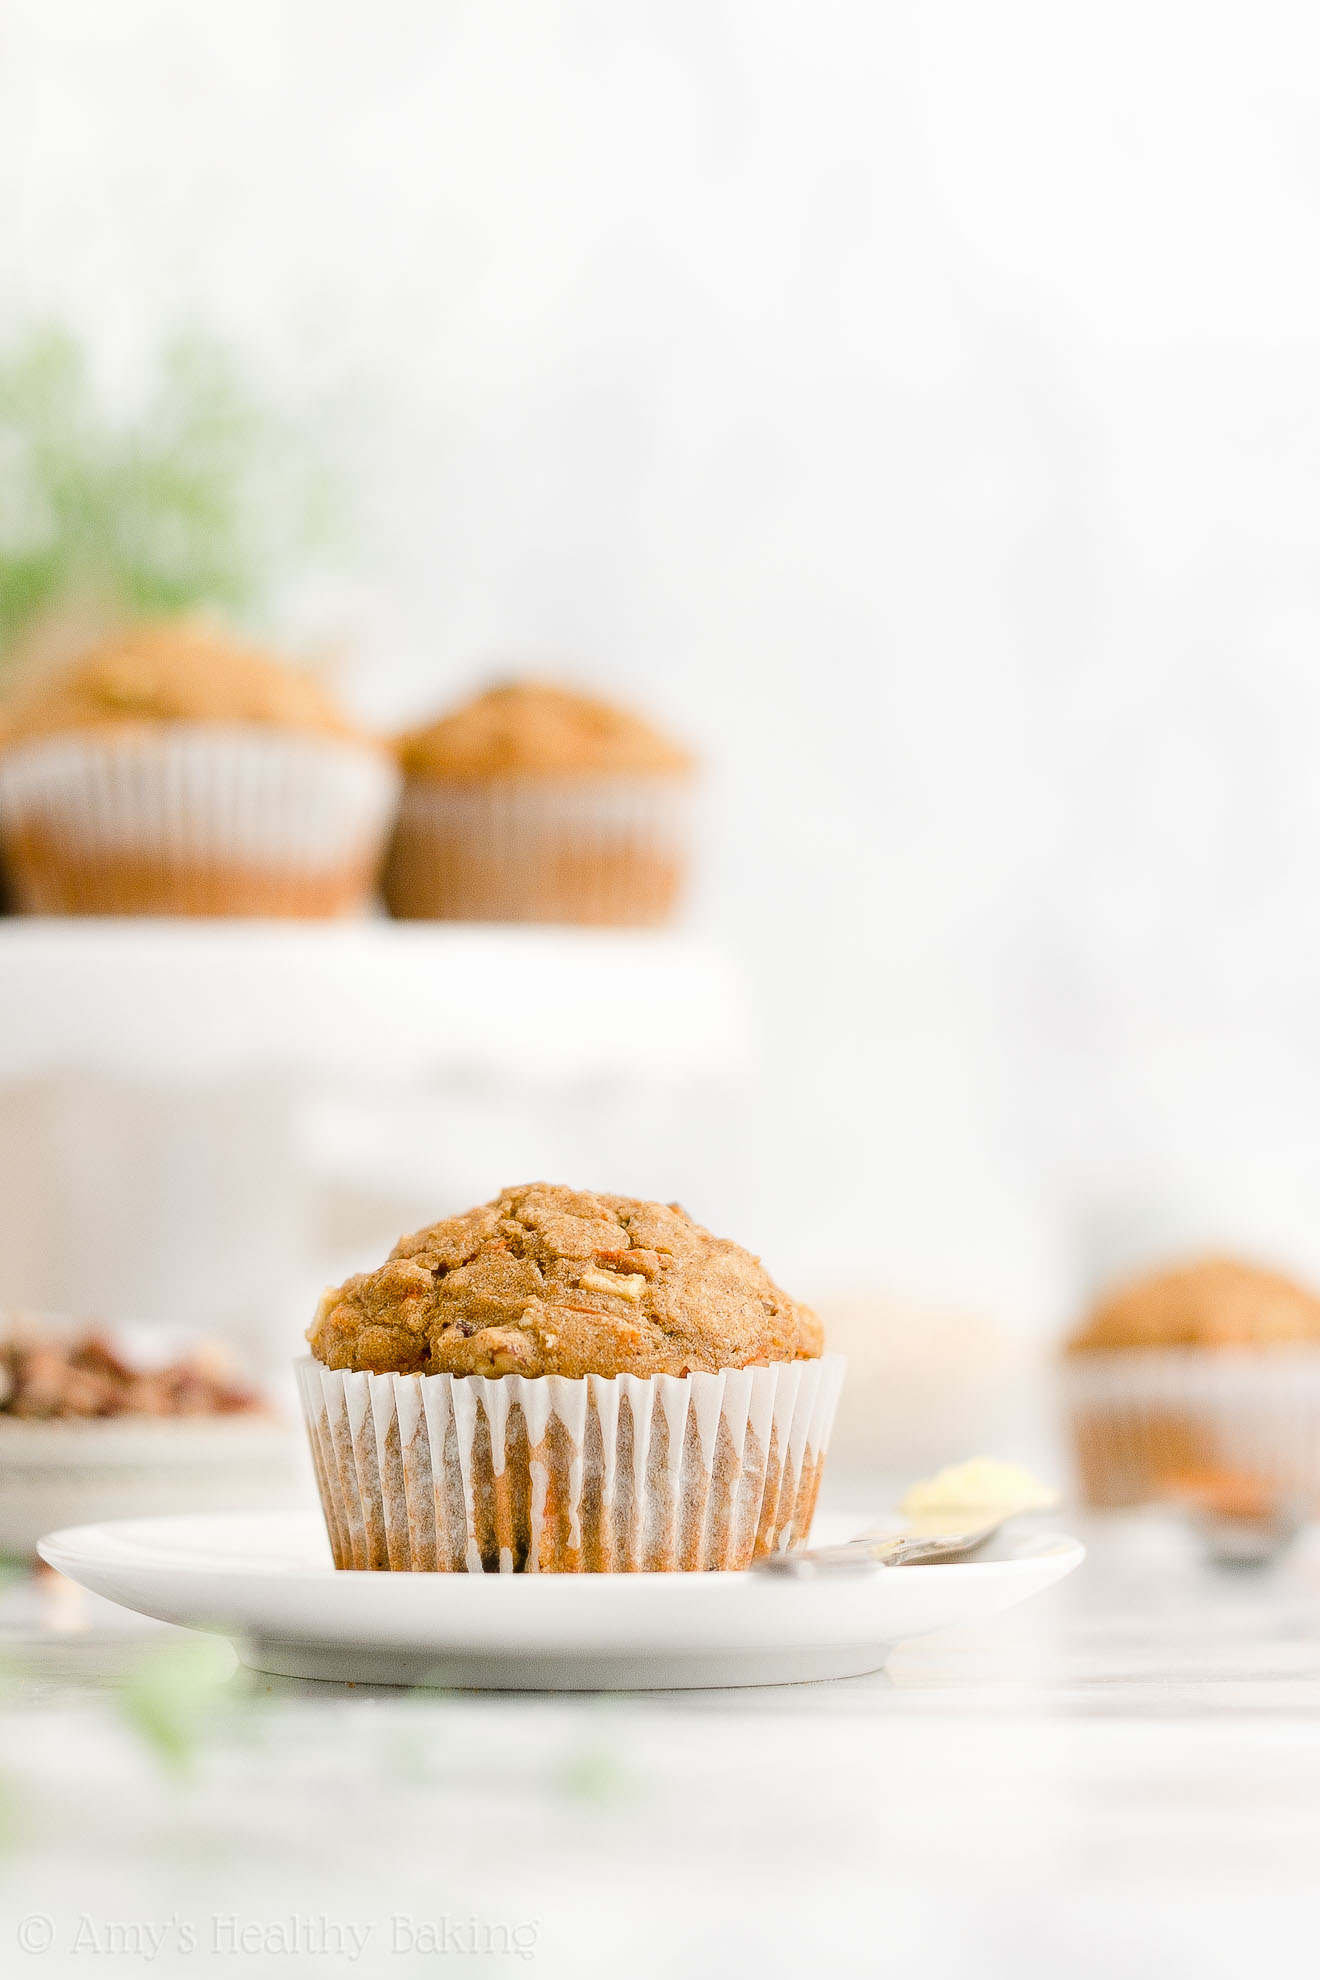 Best Easy Healthy Low Calorie No Sugar Moist Morning Glory Oatmeal Muffins